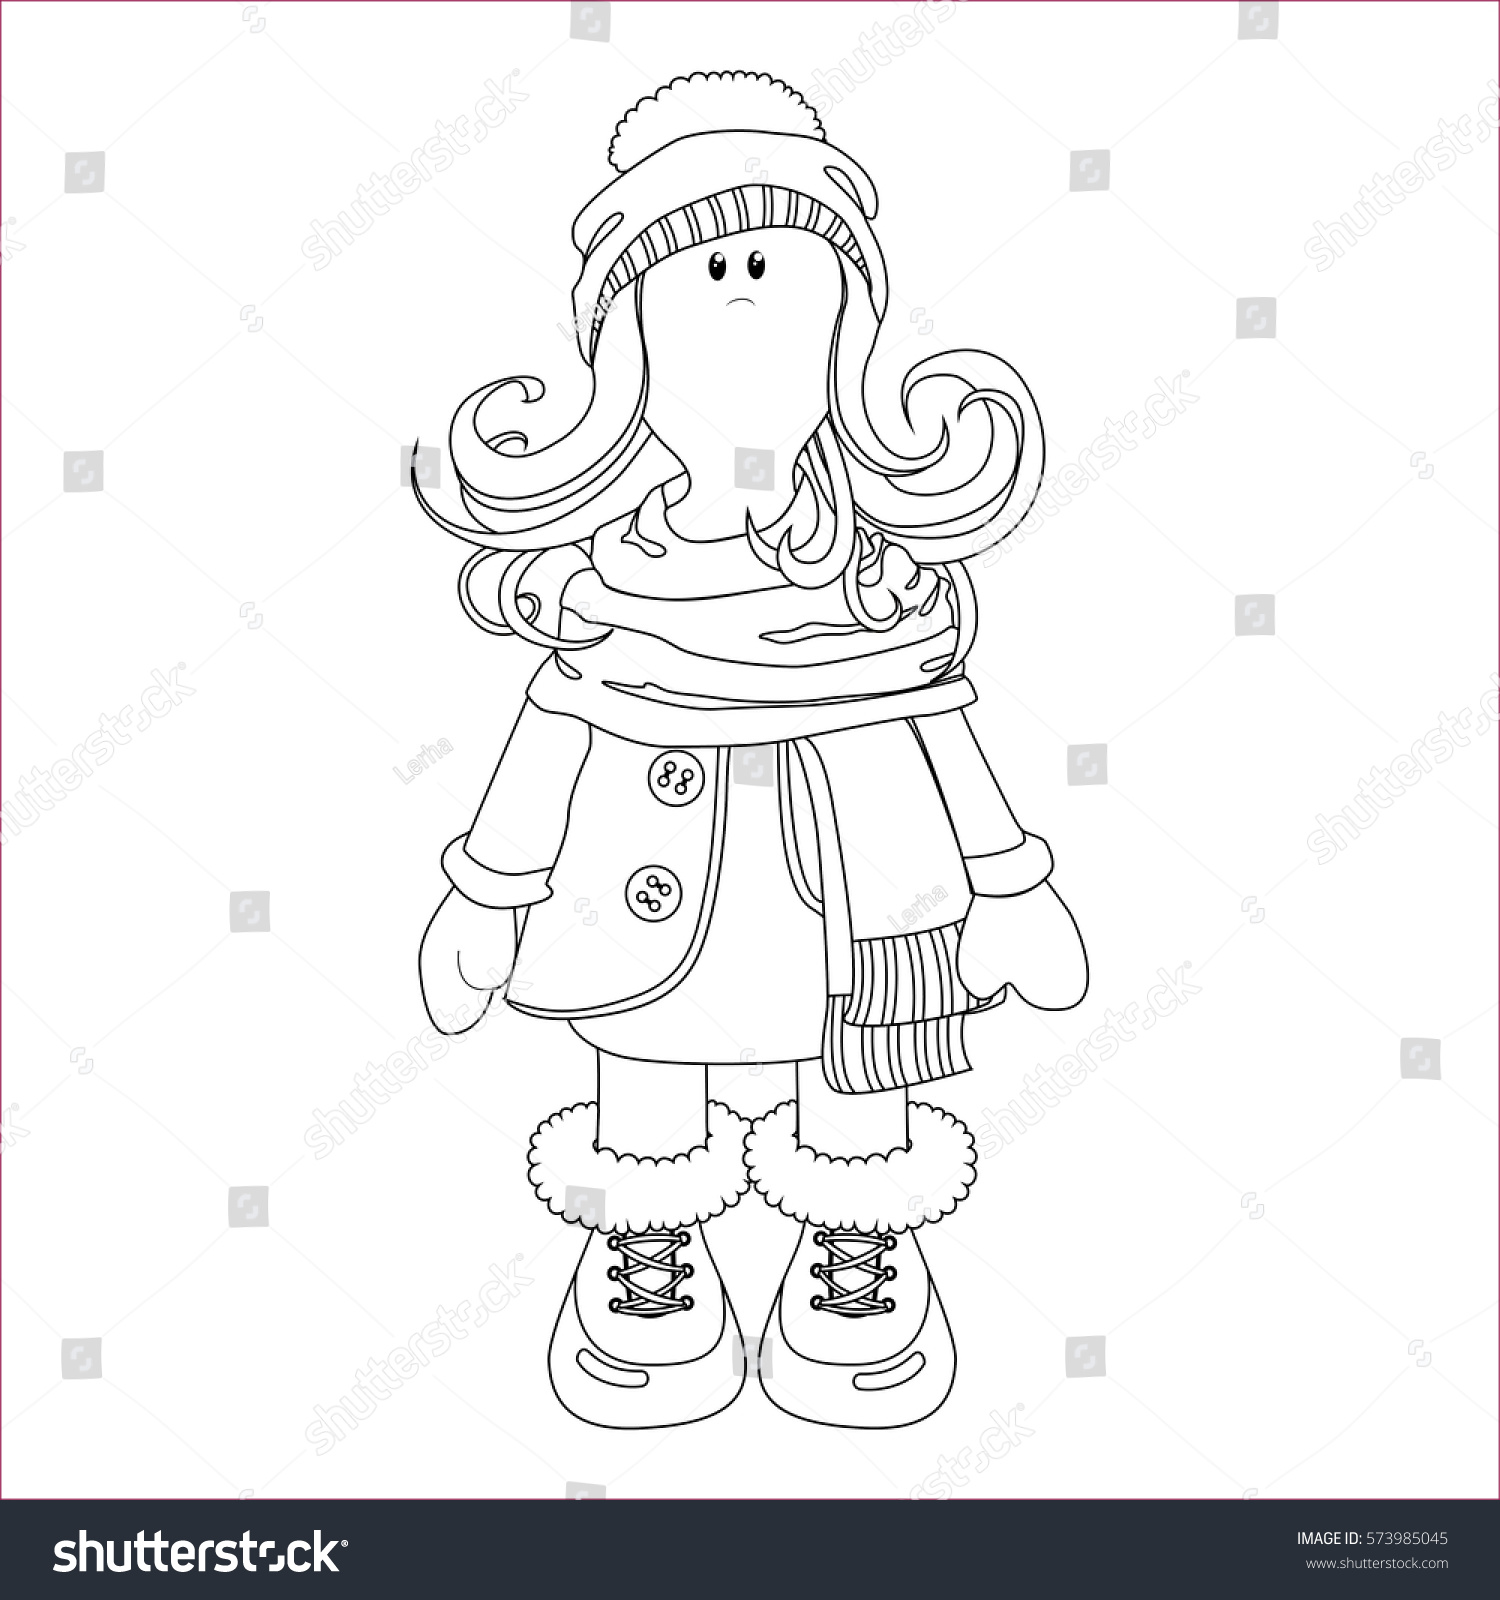 Childrens coloring sheet of a rag doll - Vector Coloring Scandinavian Rag Doll In The Form Of A Girl In Winter Clothes Coat